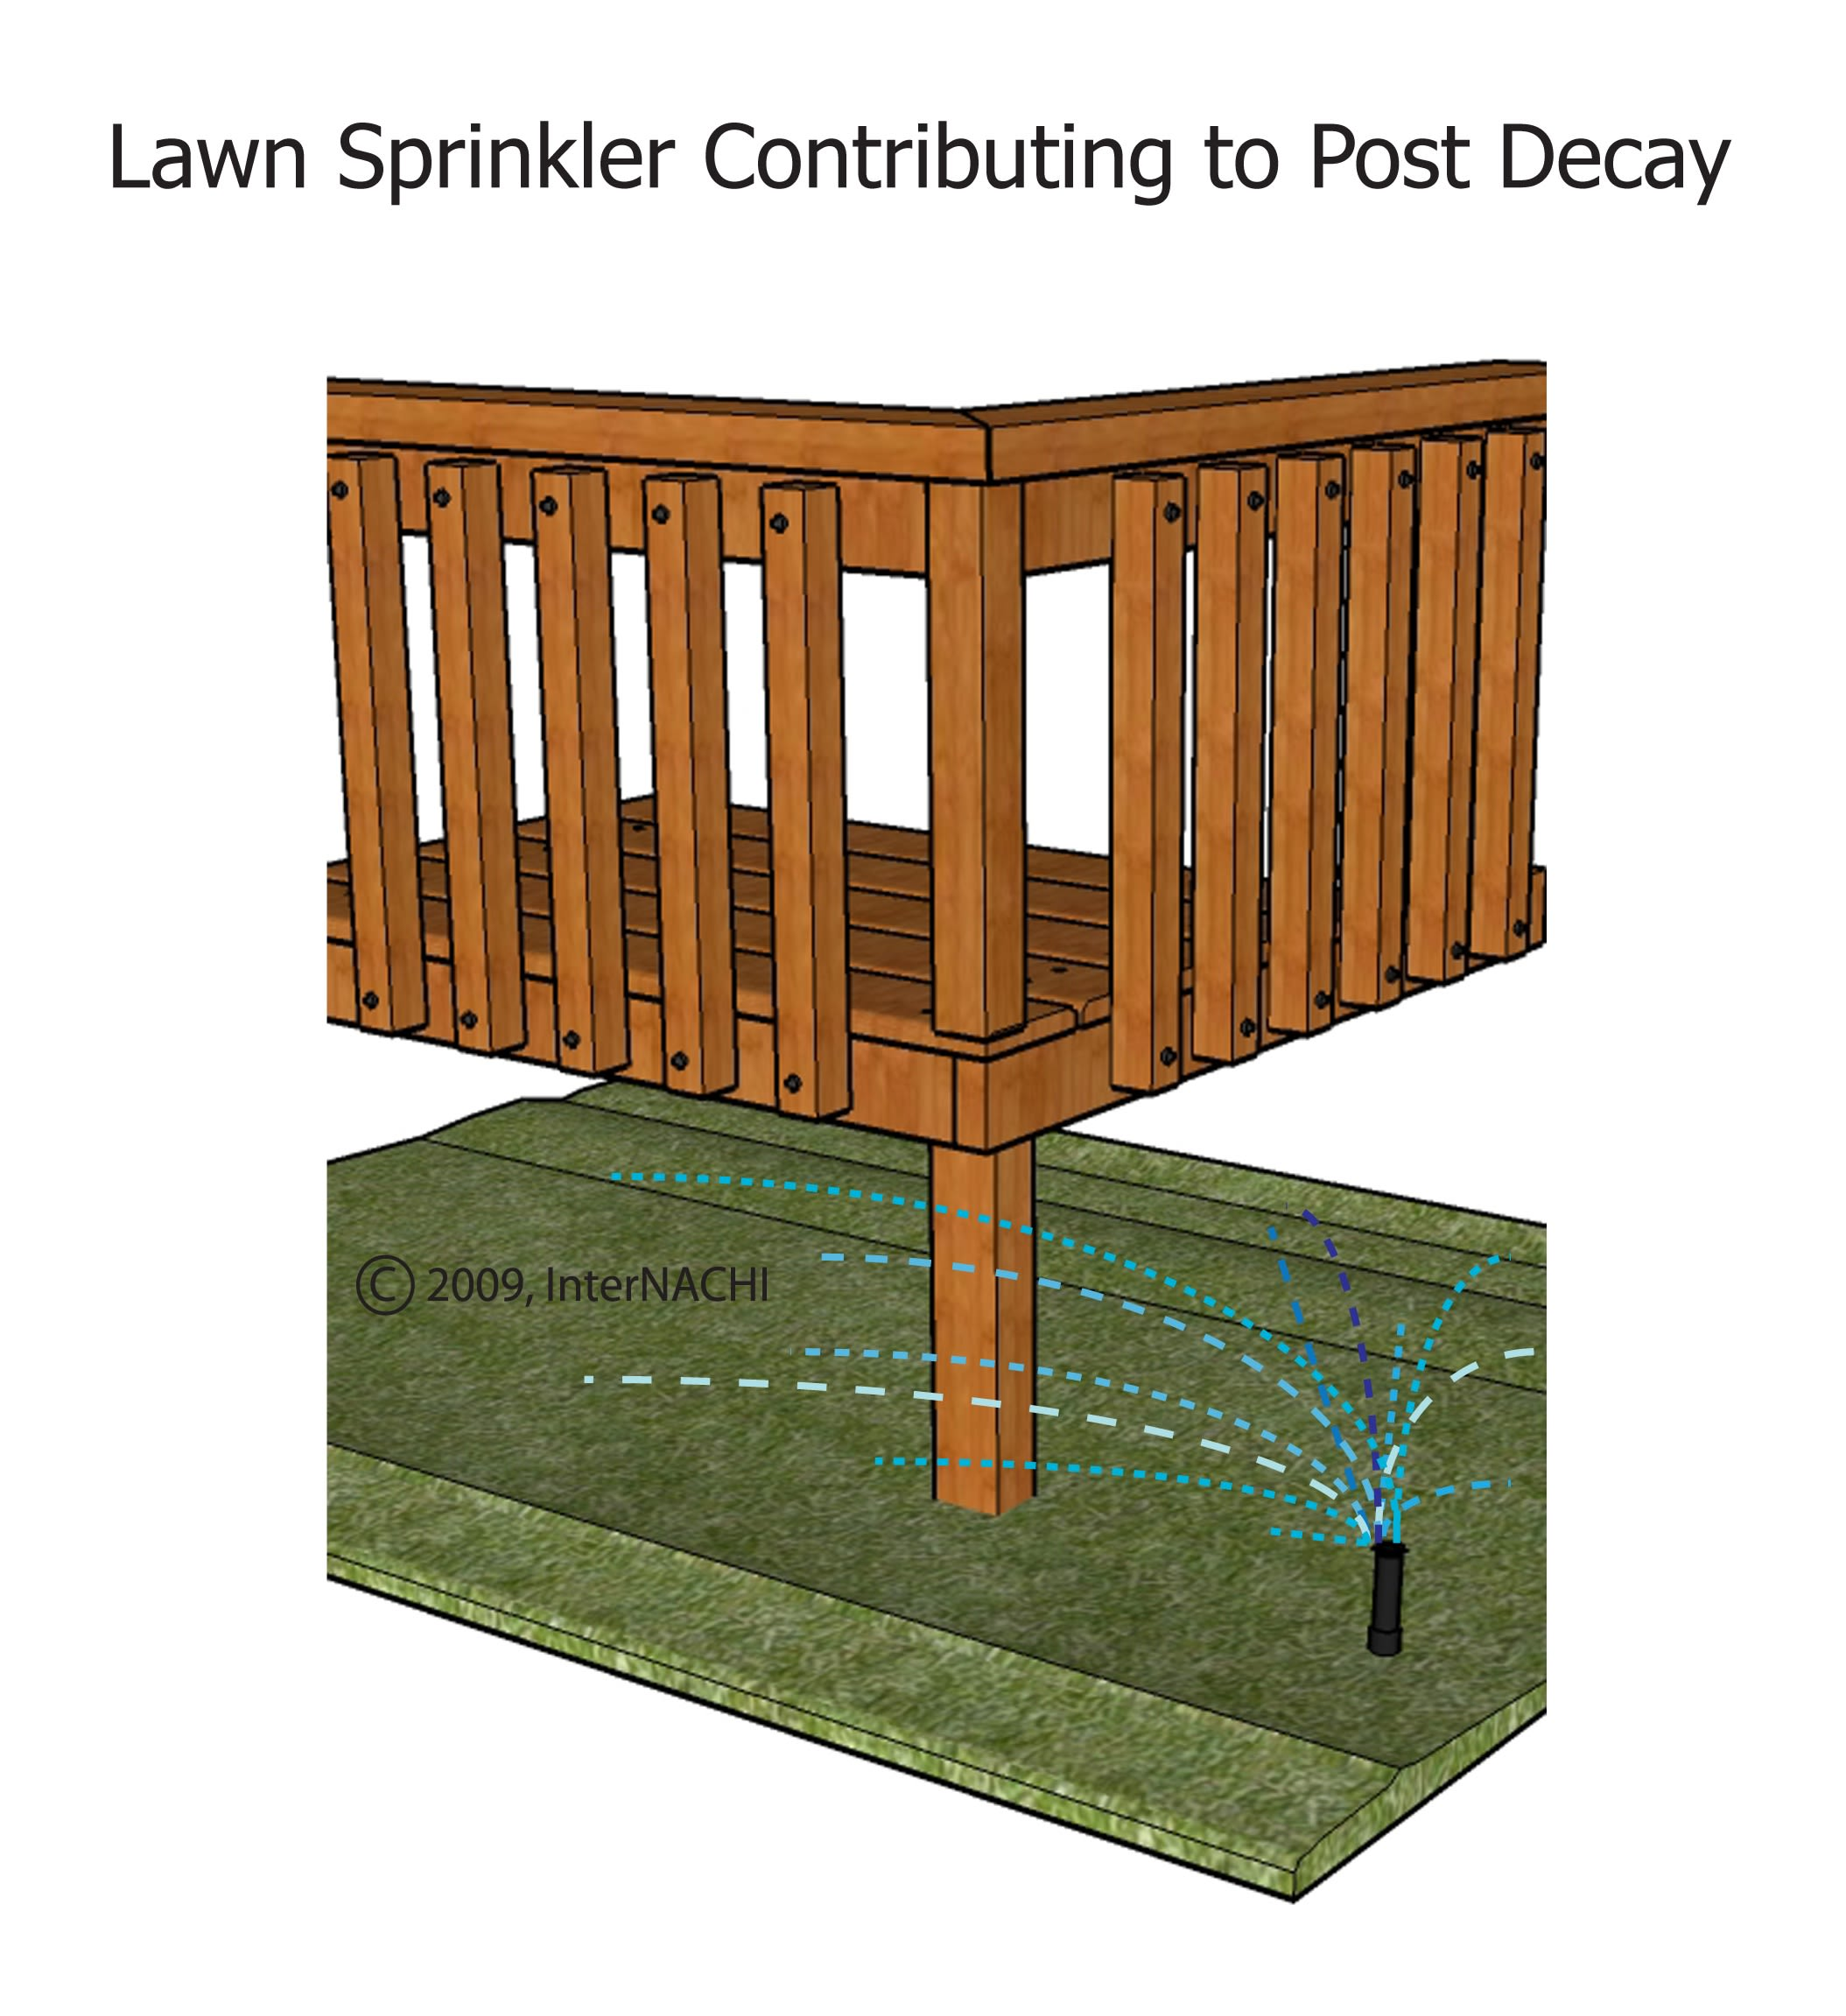 Lawn sprinkler contributing to deck post decay.